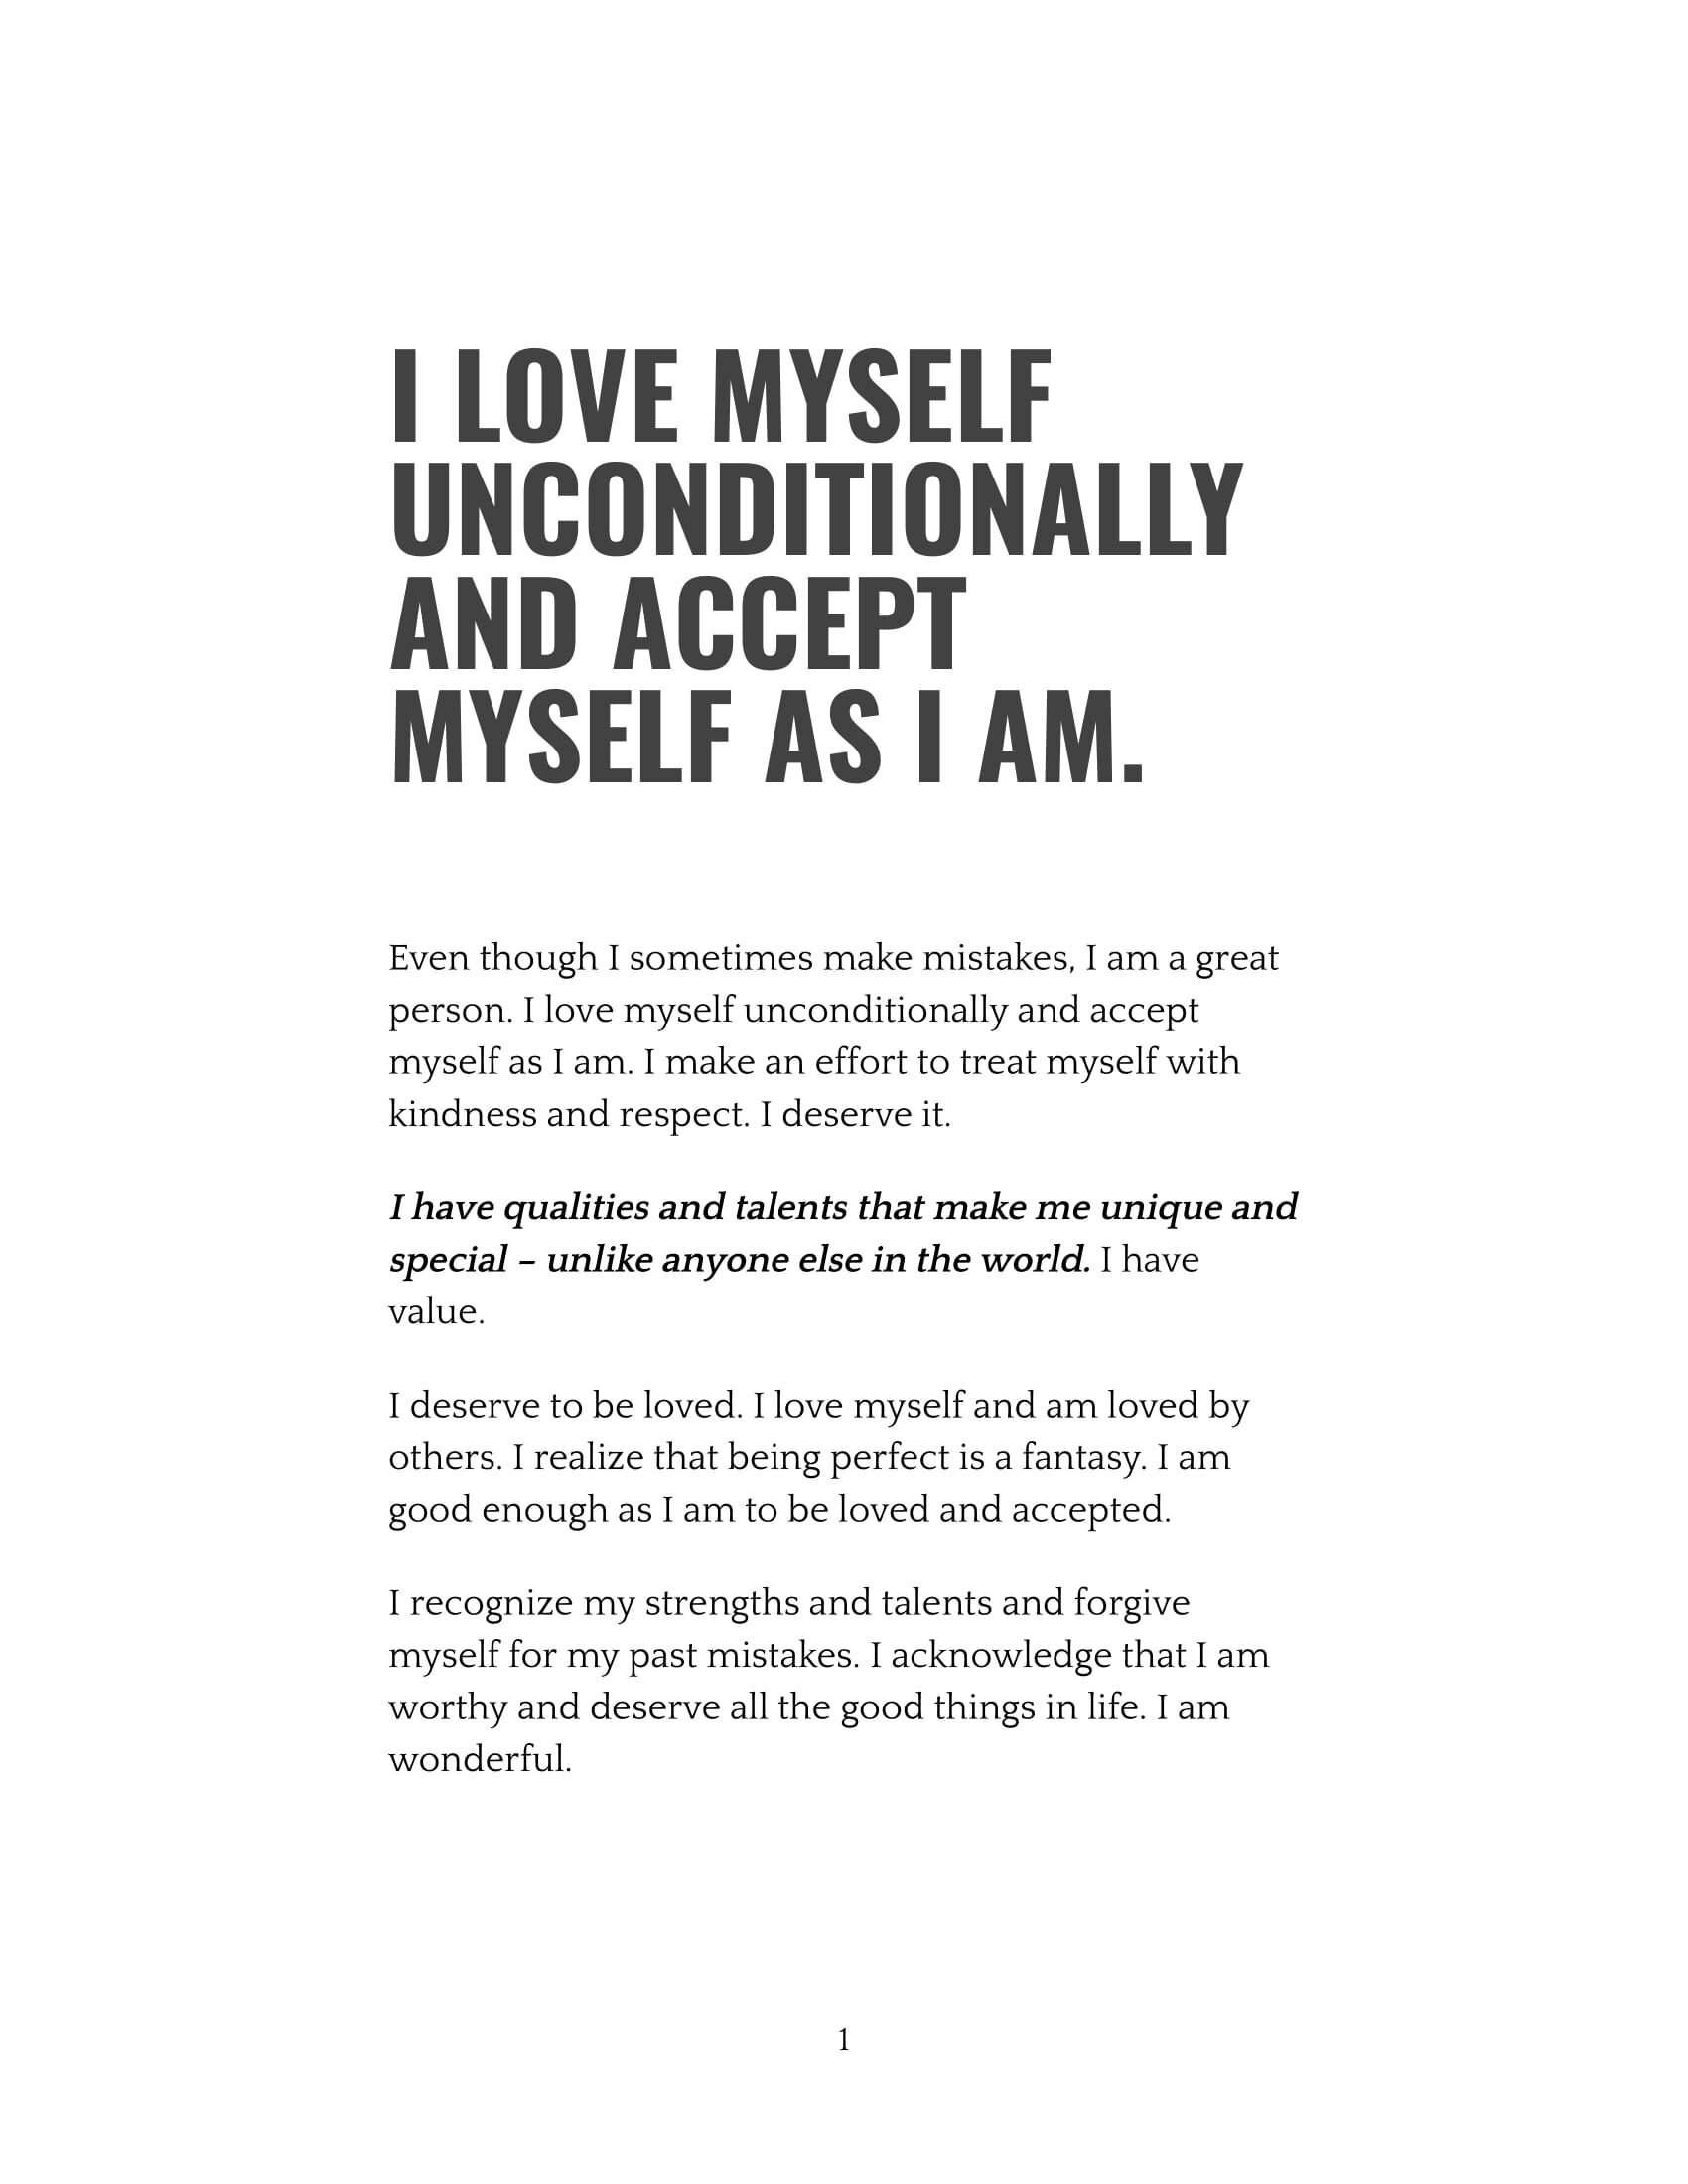 I Love Myself Unconditionally And Accept Myself As I Am-1.jpg